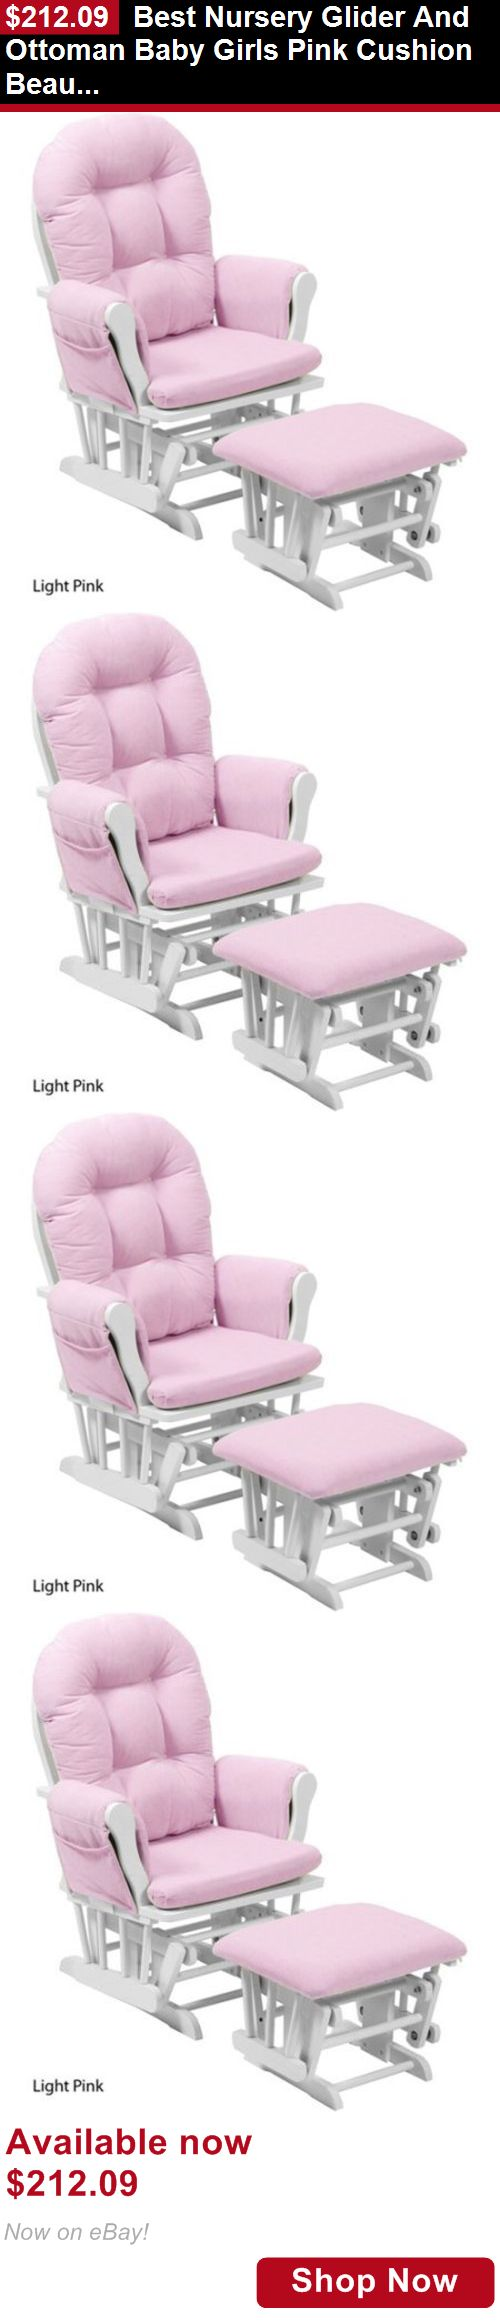 Rockers Gliders: Best Nursery Glider And Ottoman Baby Girls Pink Cushion Beautiful Comfortable BUY IT NOW ONLY: $212.09